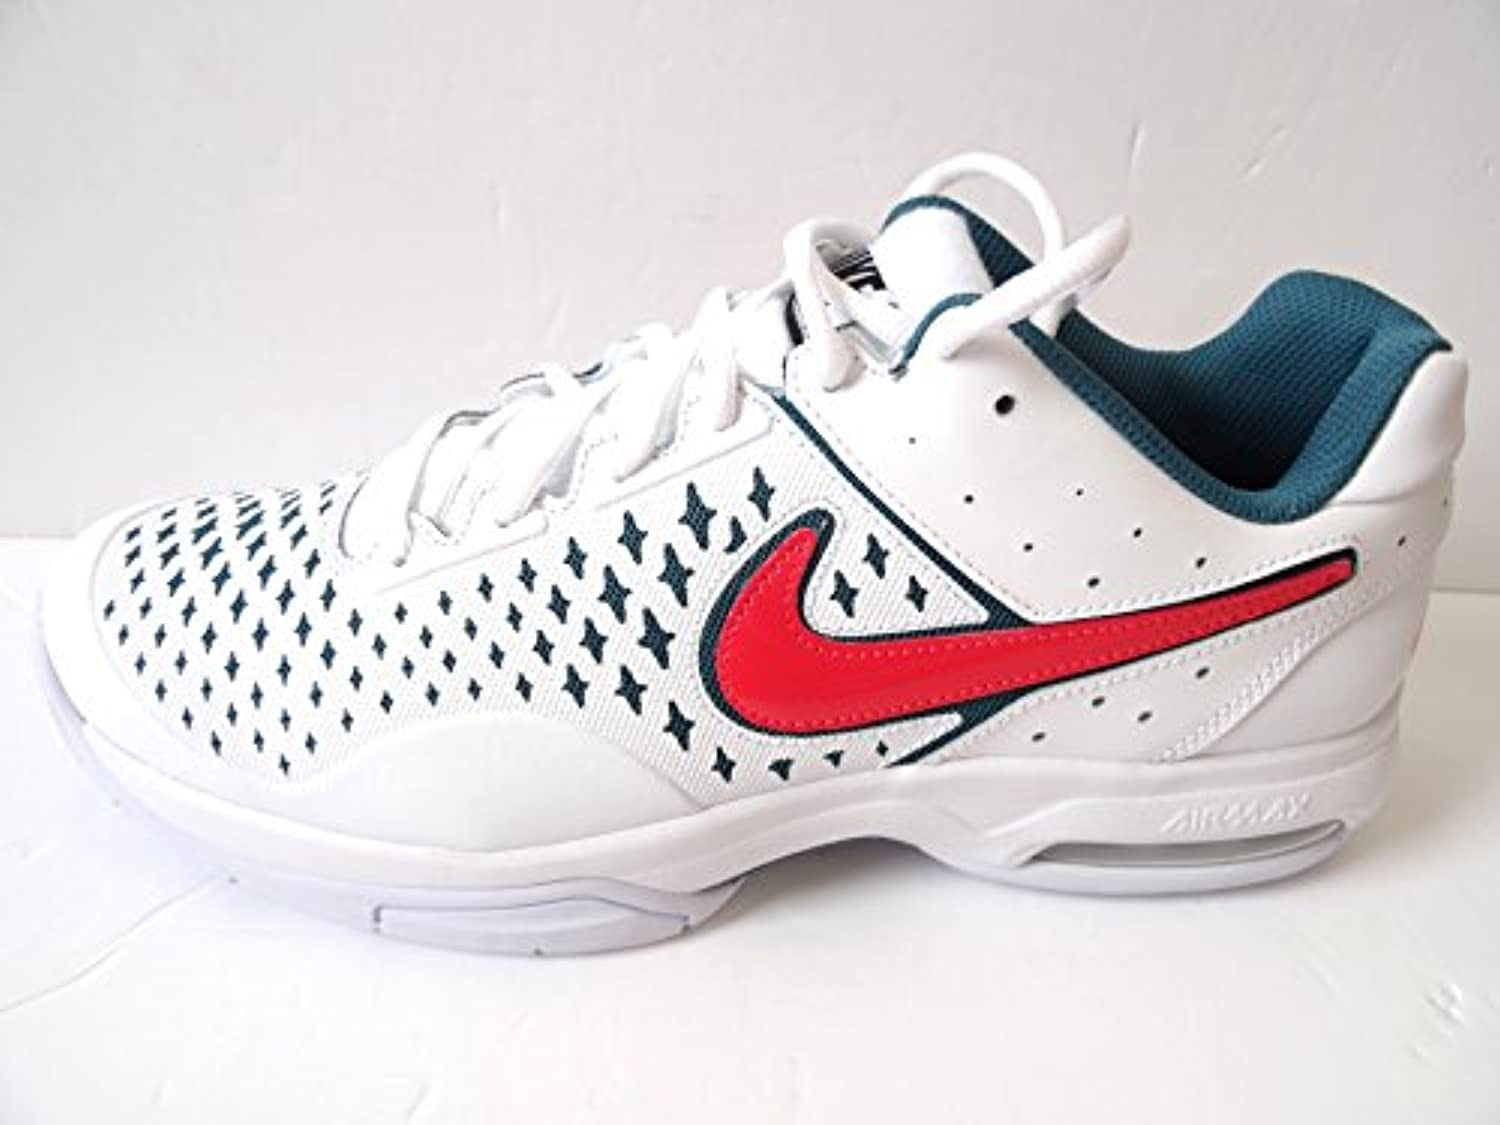 ... nike air max cage advantage OMNI mens tennis trainers 599362 163  sneakers shoes federer nadal ...